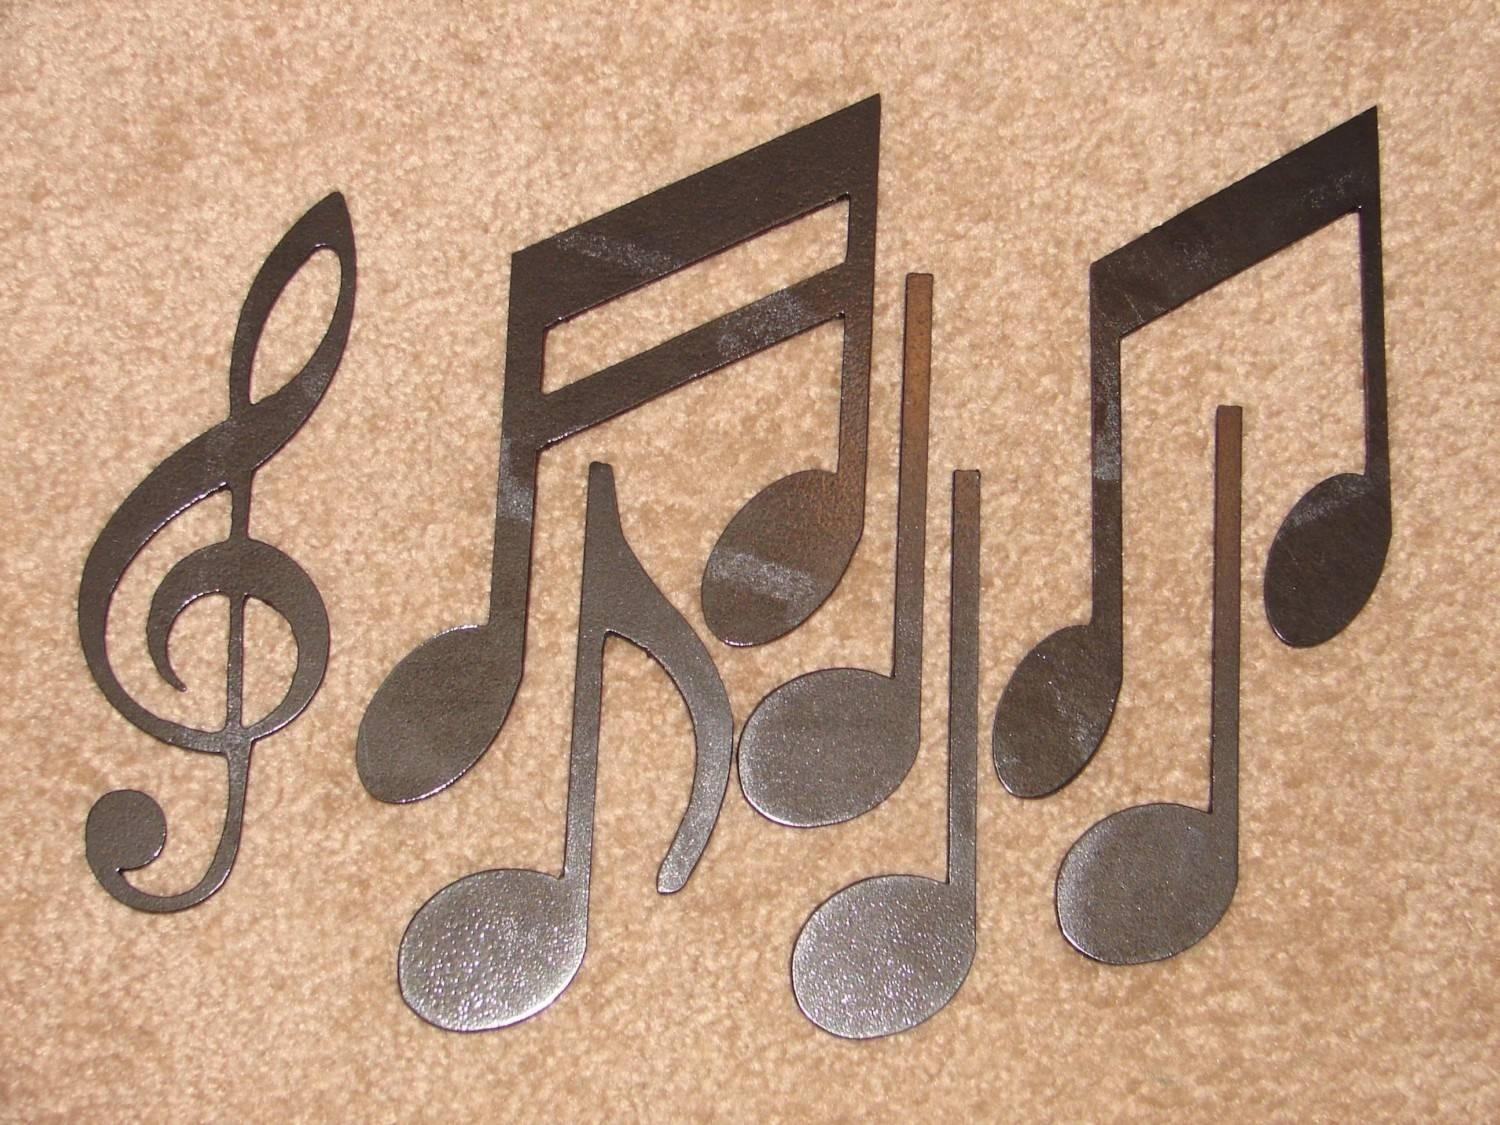 Metal Wall Art Decor Music Notes Musical Note Patio Inside Most Up To Date Music Metal Wall Art (View 15 of 20)